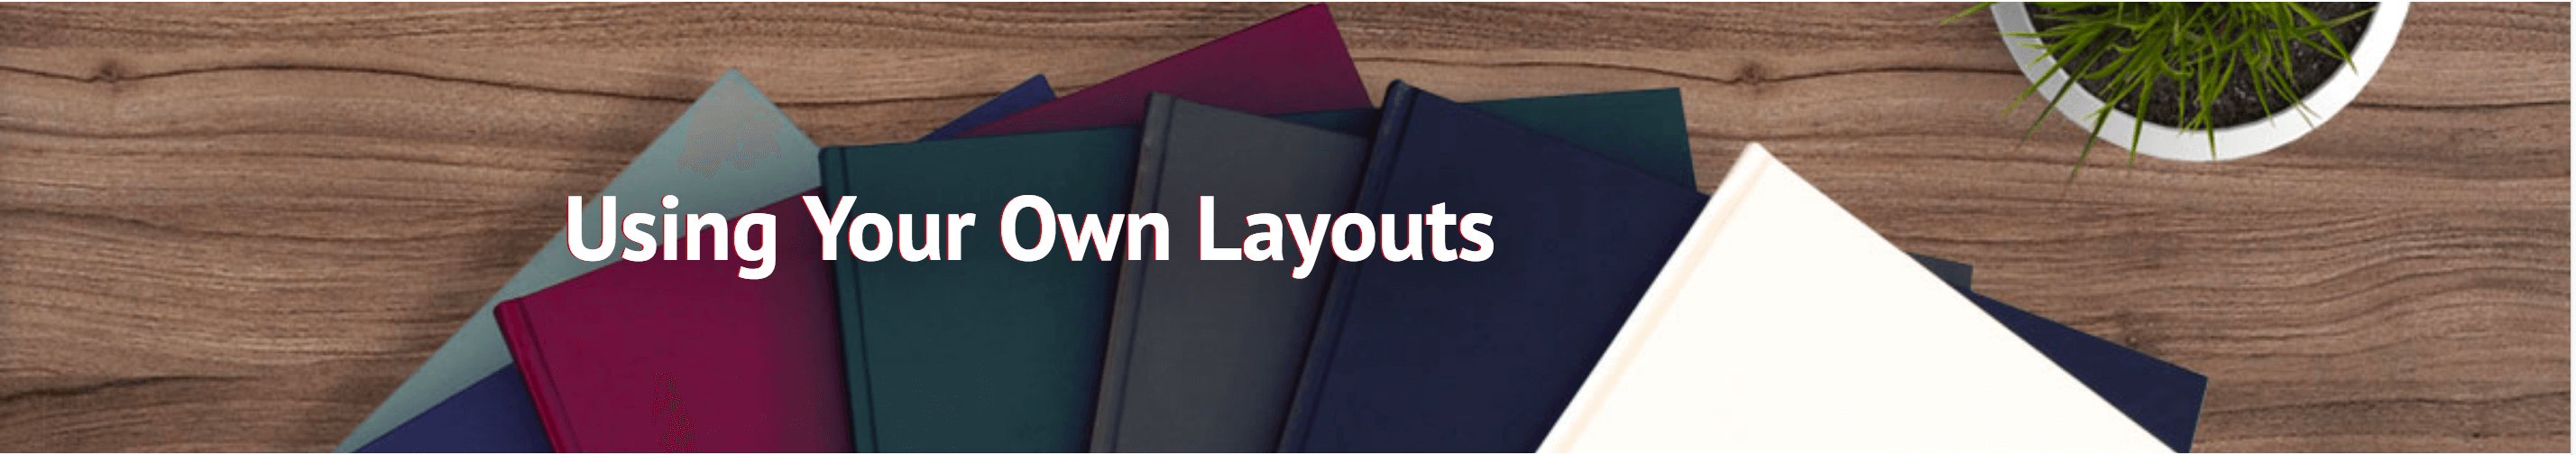 Using your own layouts